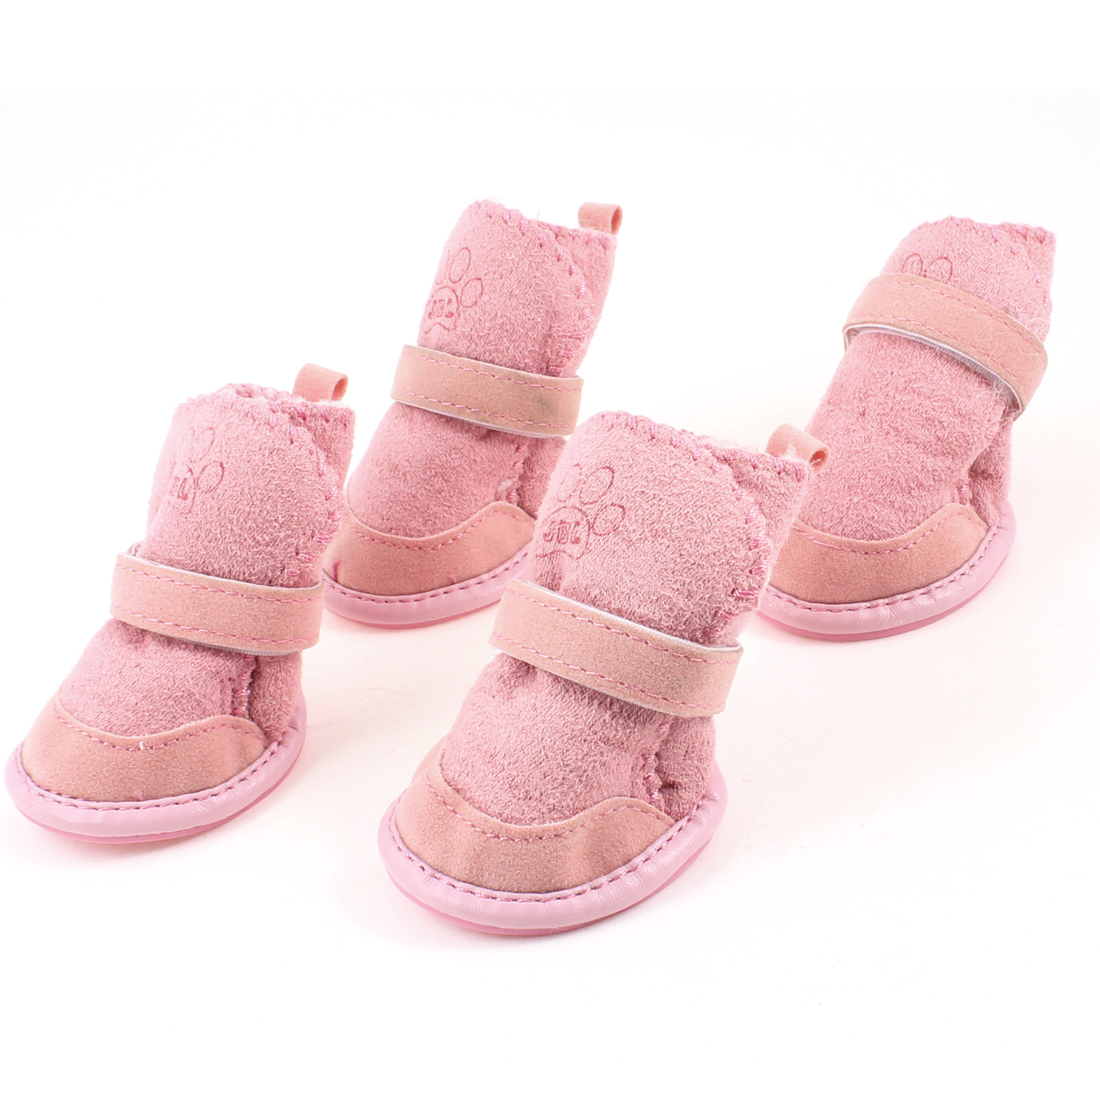 Pink Nonslip Sole Hook and Loop Fastener Booties Pug Dog Chihuahua Shoes Boots 2 Pair M